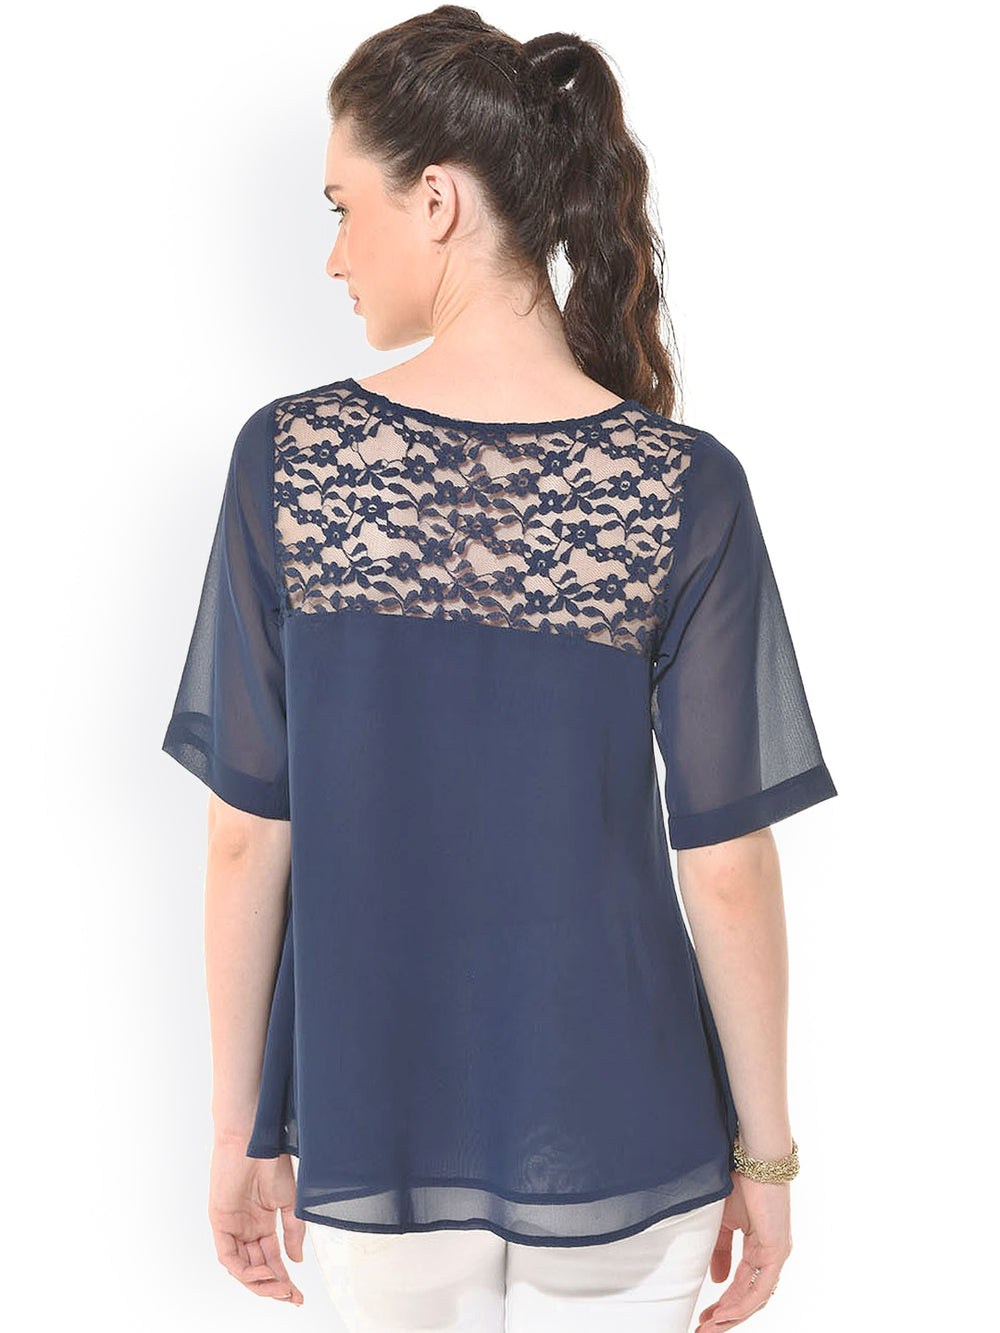 Besiva Navy Top